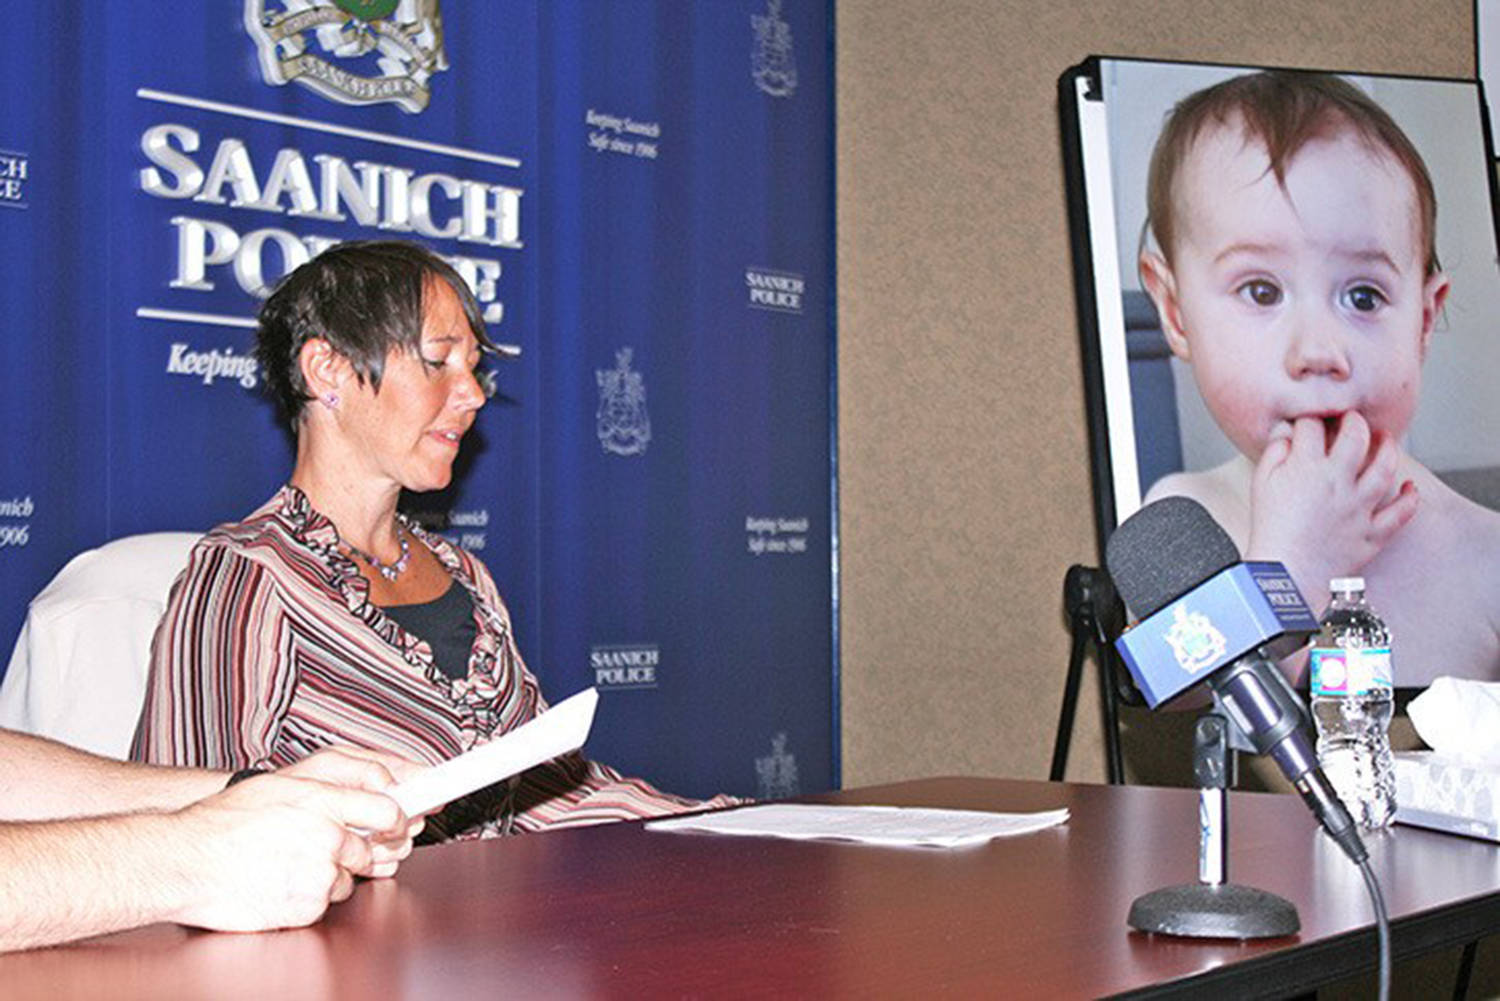 B.C. mom charged with abducting child to face trial in U.K. this week